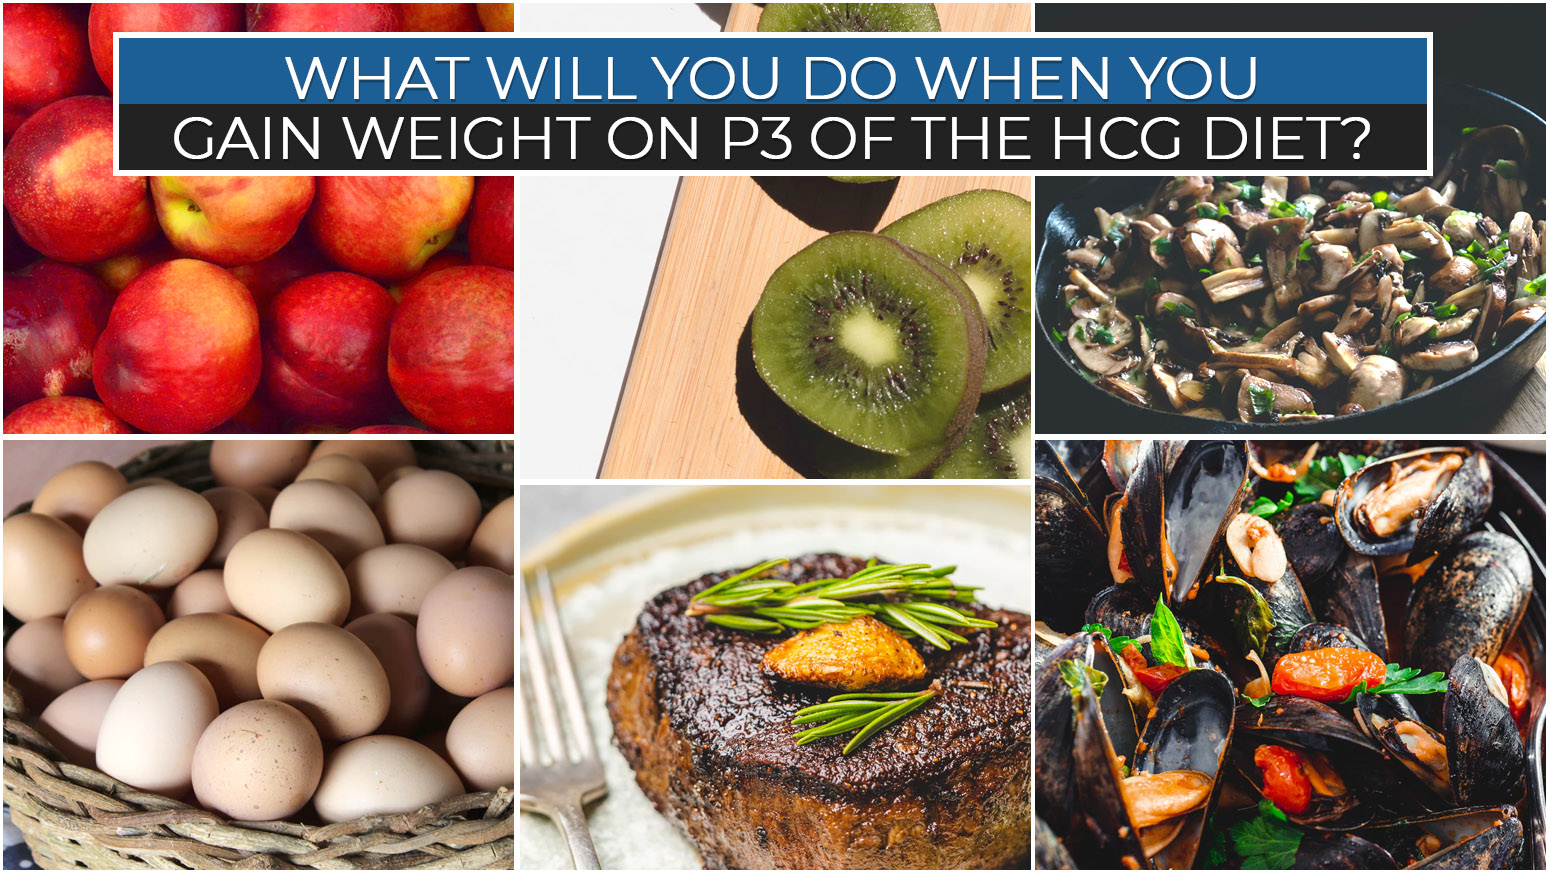 WHAT WILL YOU DO WHEN YOU GAIN WEIGHT ON P3 OF THE HCG DIET?